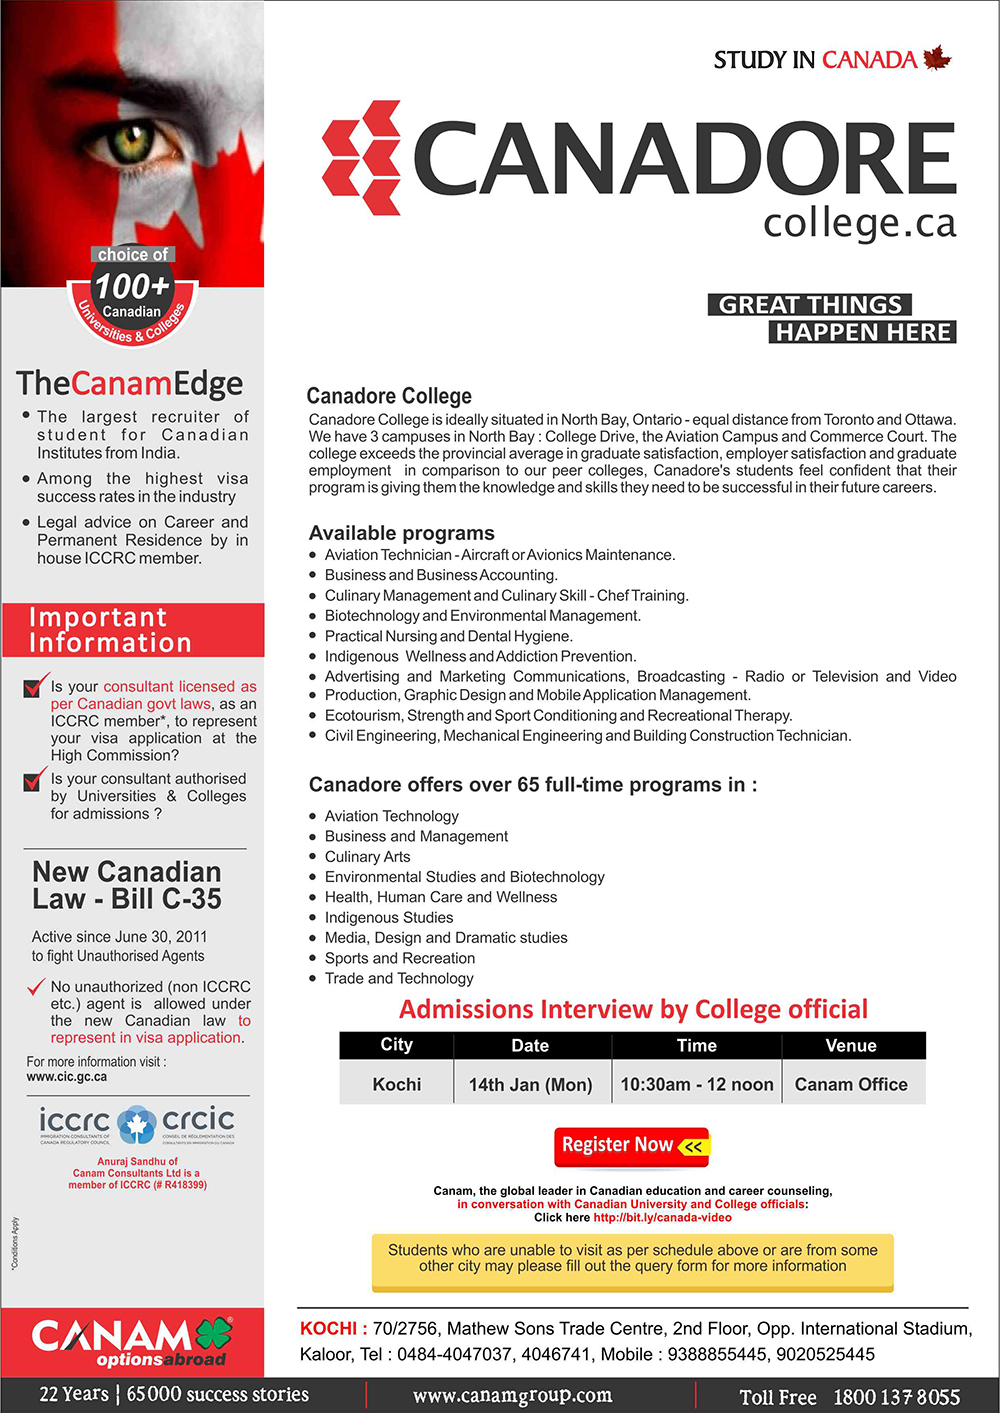 study-in-canadore-college